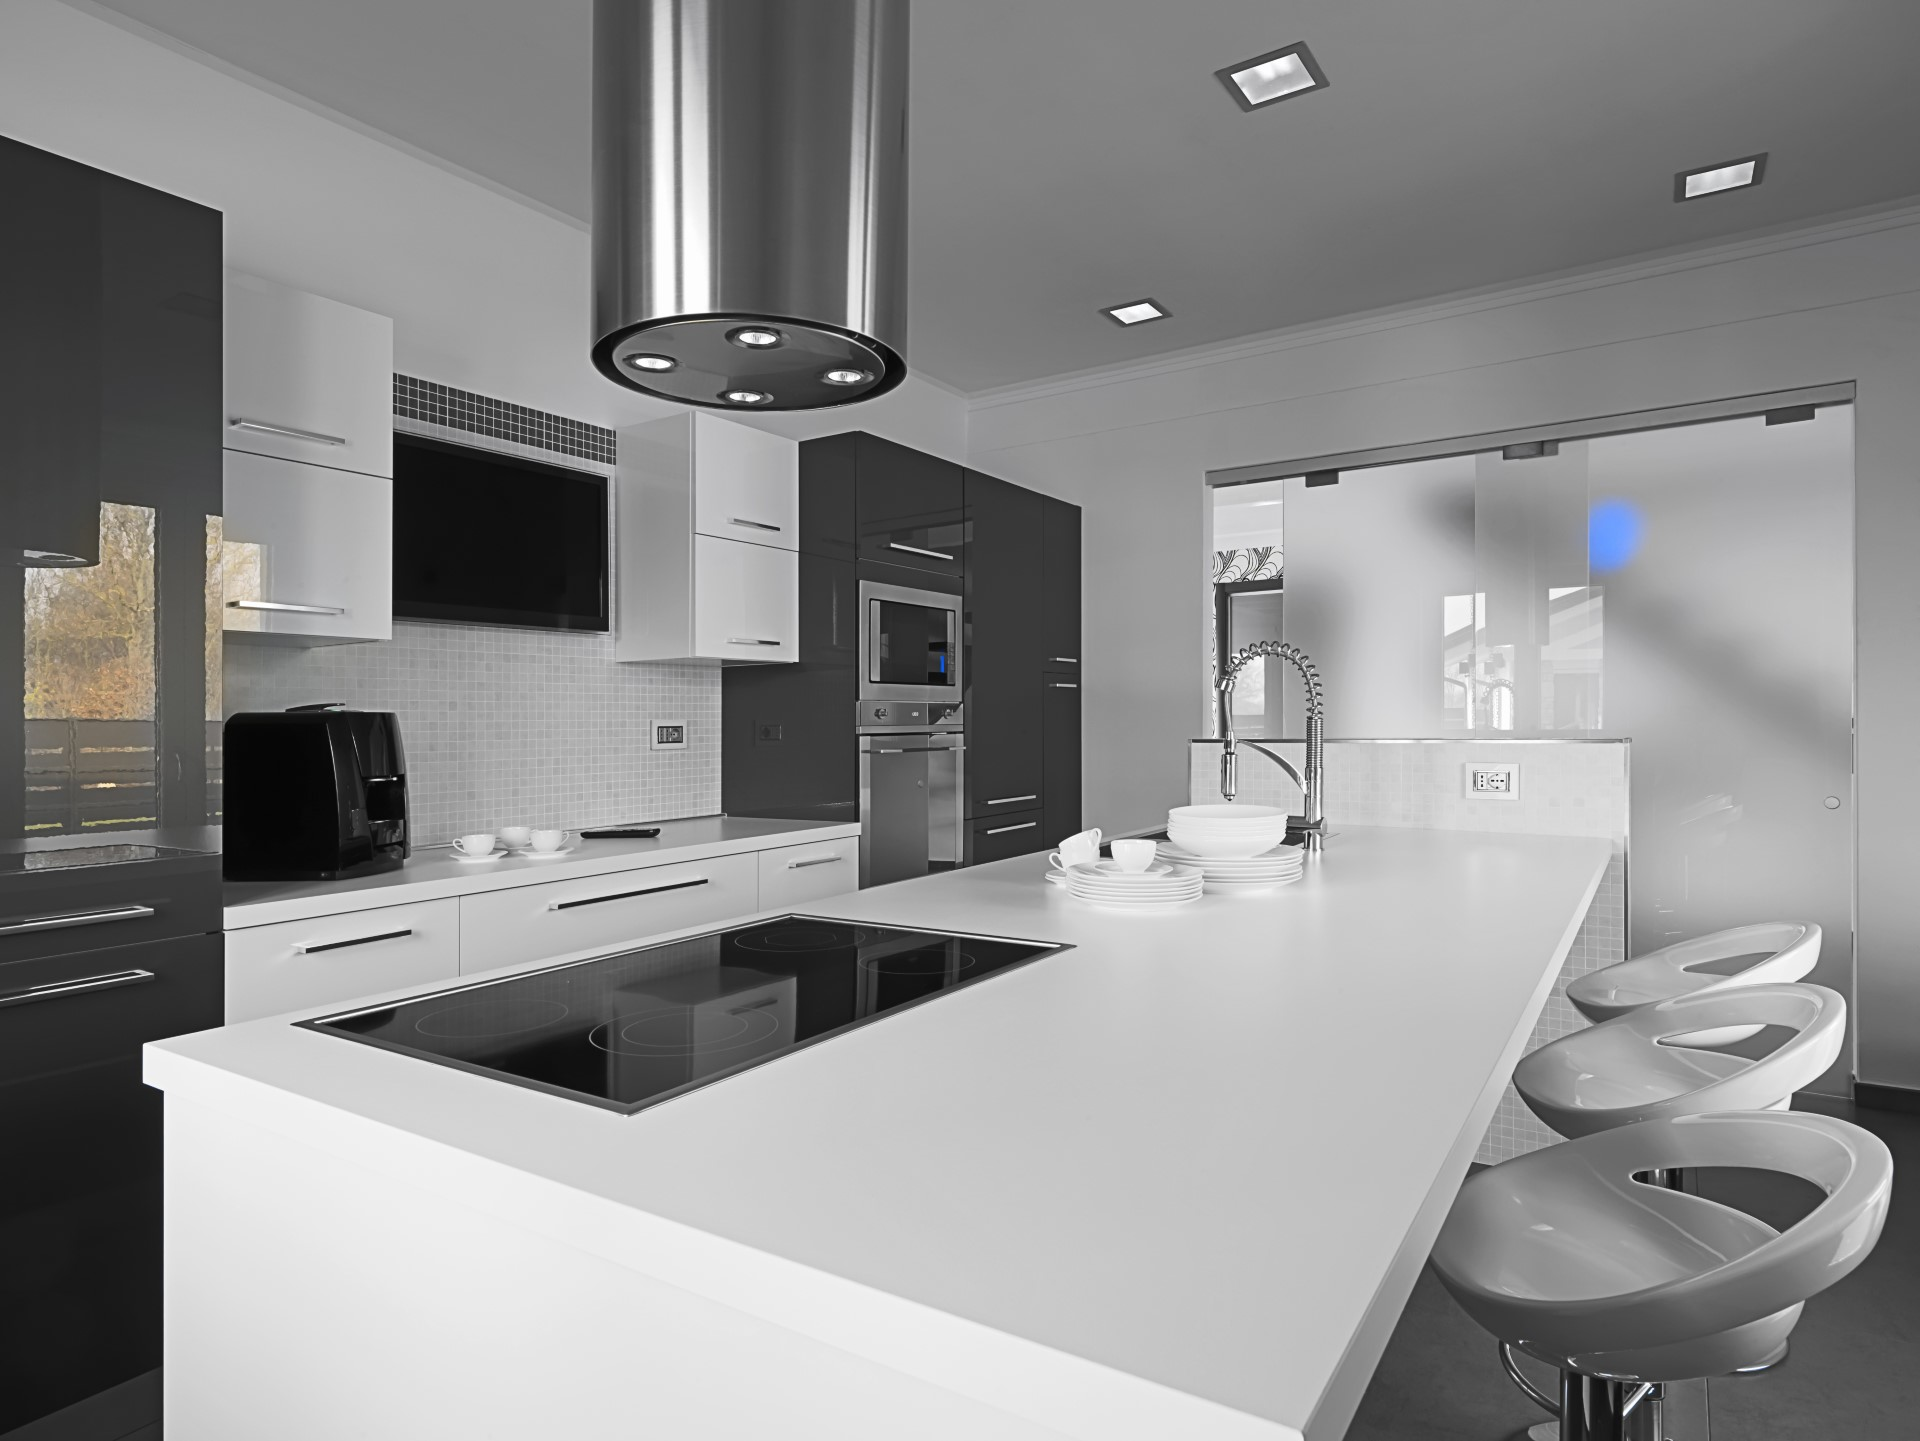 For the modern minimalist, this design carries the simplicity in only providing the bare essentials for the kitchen. A design like this makes cleanup a breeze because there are'nt a lot of small crevices and everything can be easily wiped down.